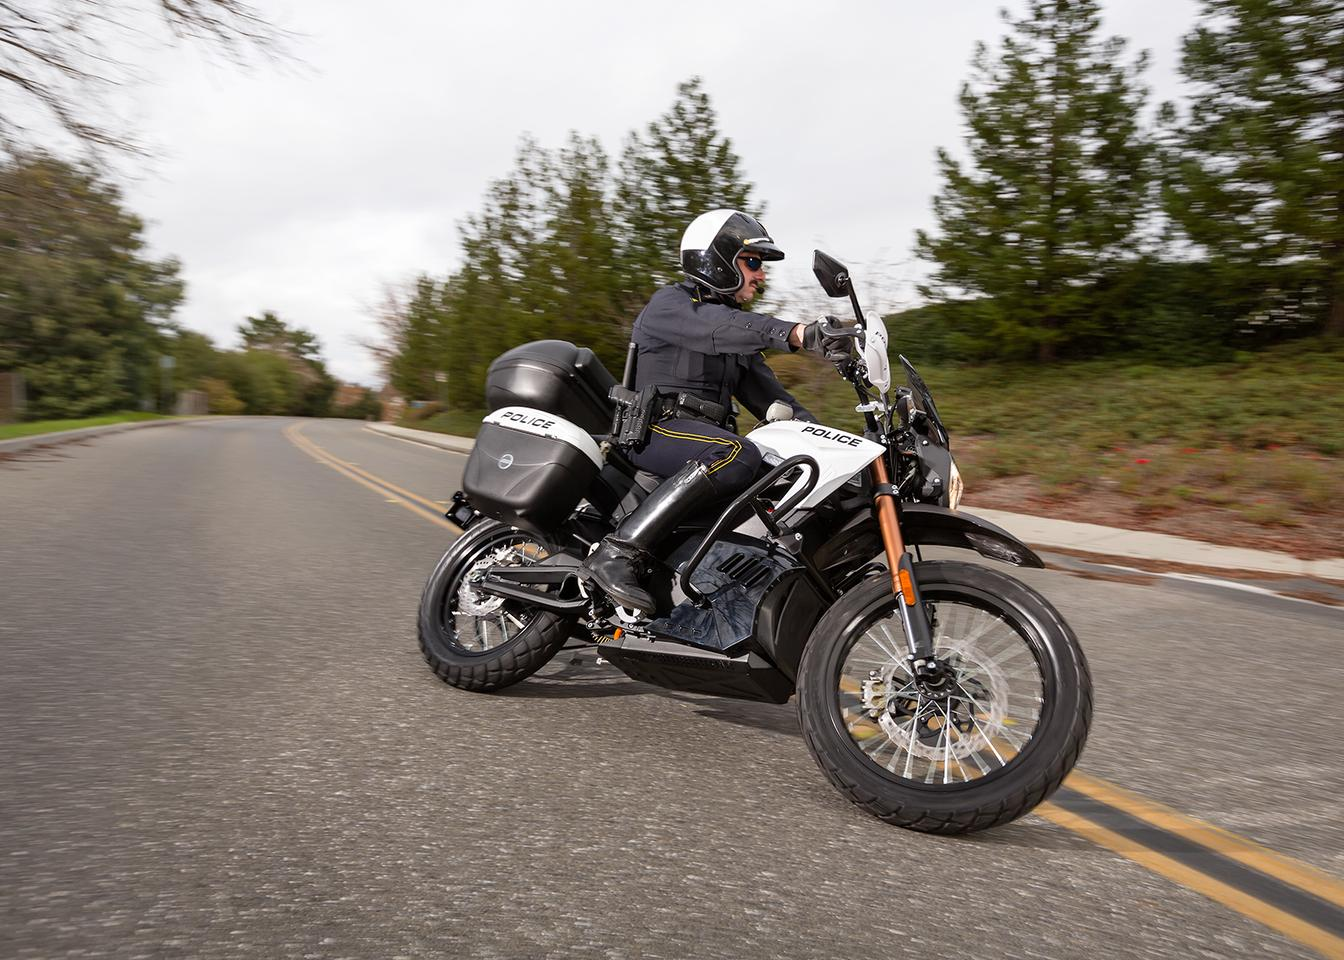 Zero has announced its 2013 Street and Dual Sport Police/Security motorcycles